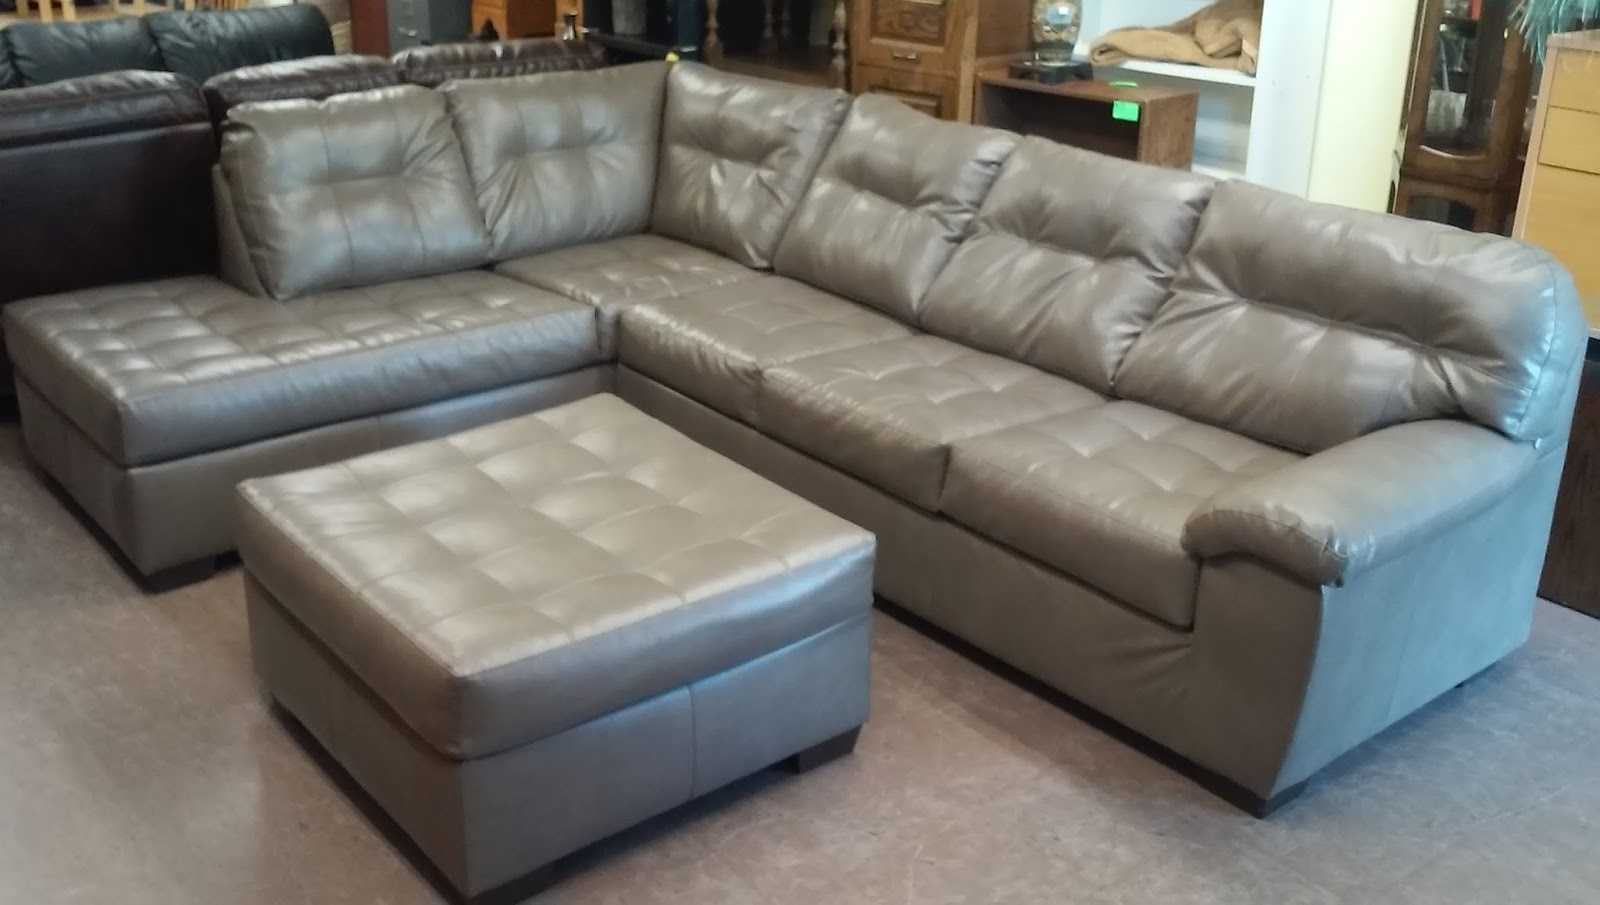 Where To Donate Sectional Sofa Standard Uhuru Furniture & Collectibles: Sold Pleather With ...